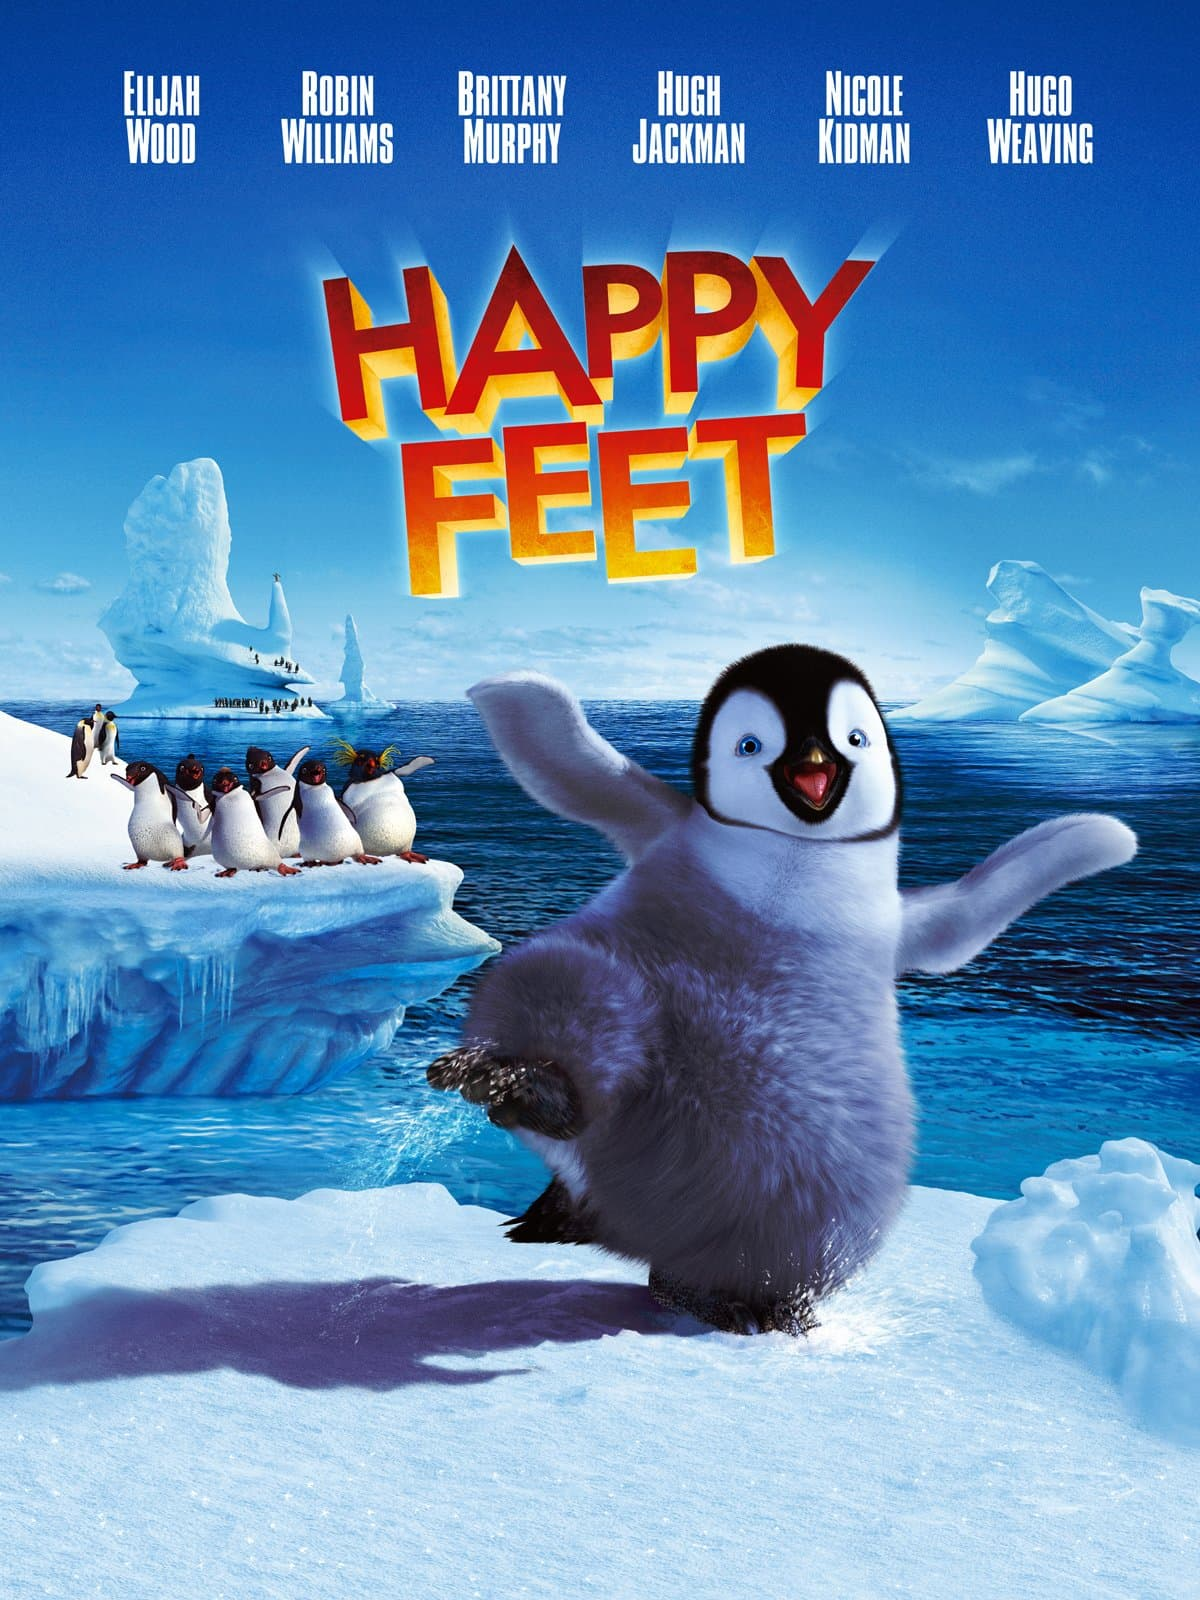 Movie cover of Happy Feet; penguin dancing on ice